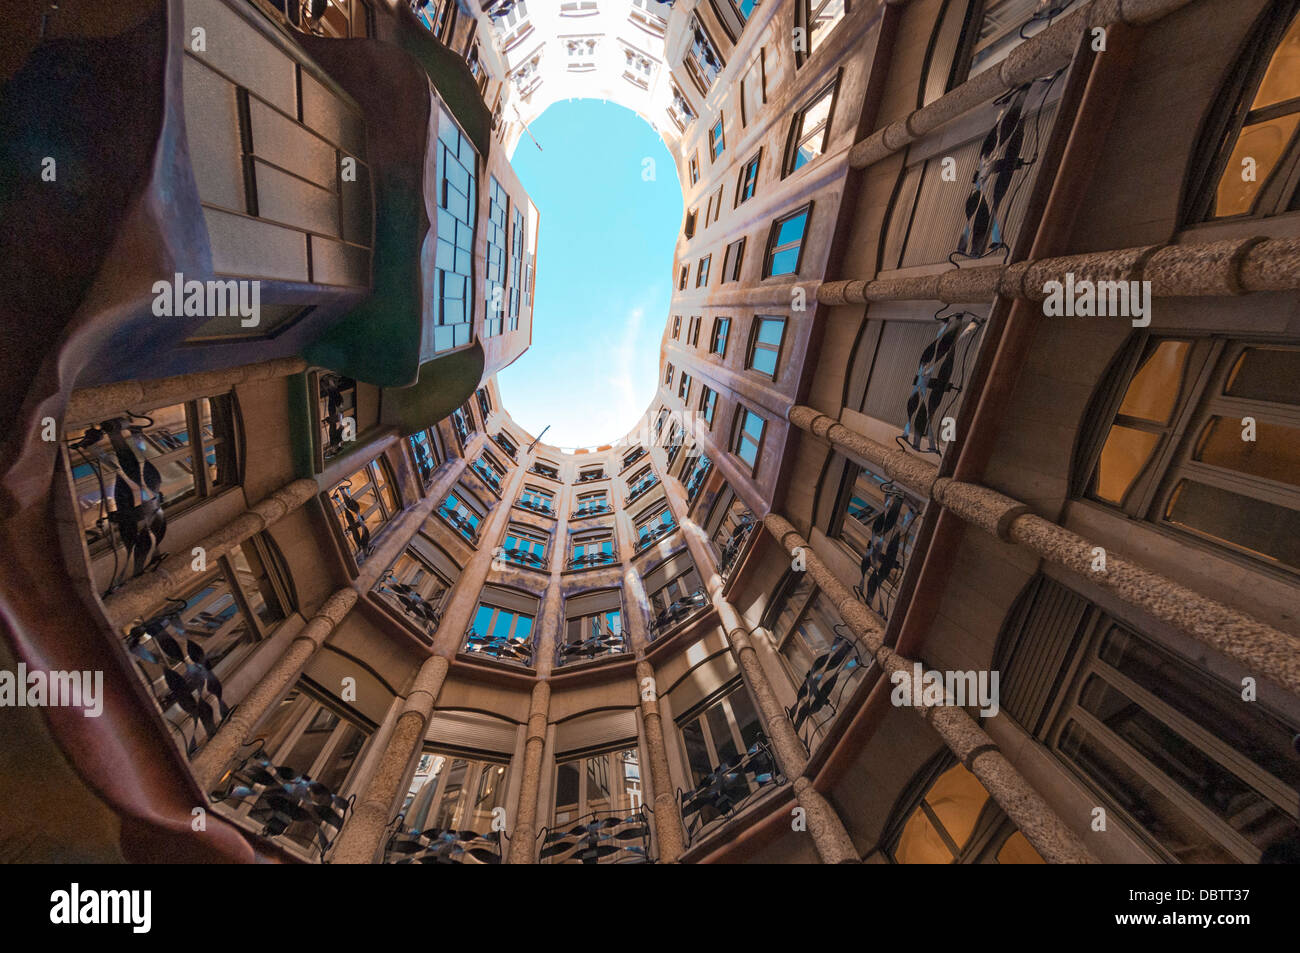 Interior fish eye view of La Pedrera (Casa Mila), Passeig de Gracia, Barcelona, Catalunya, Spain - Stock Image